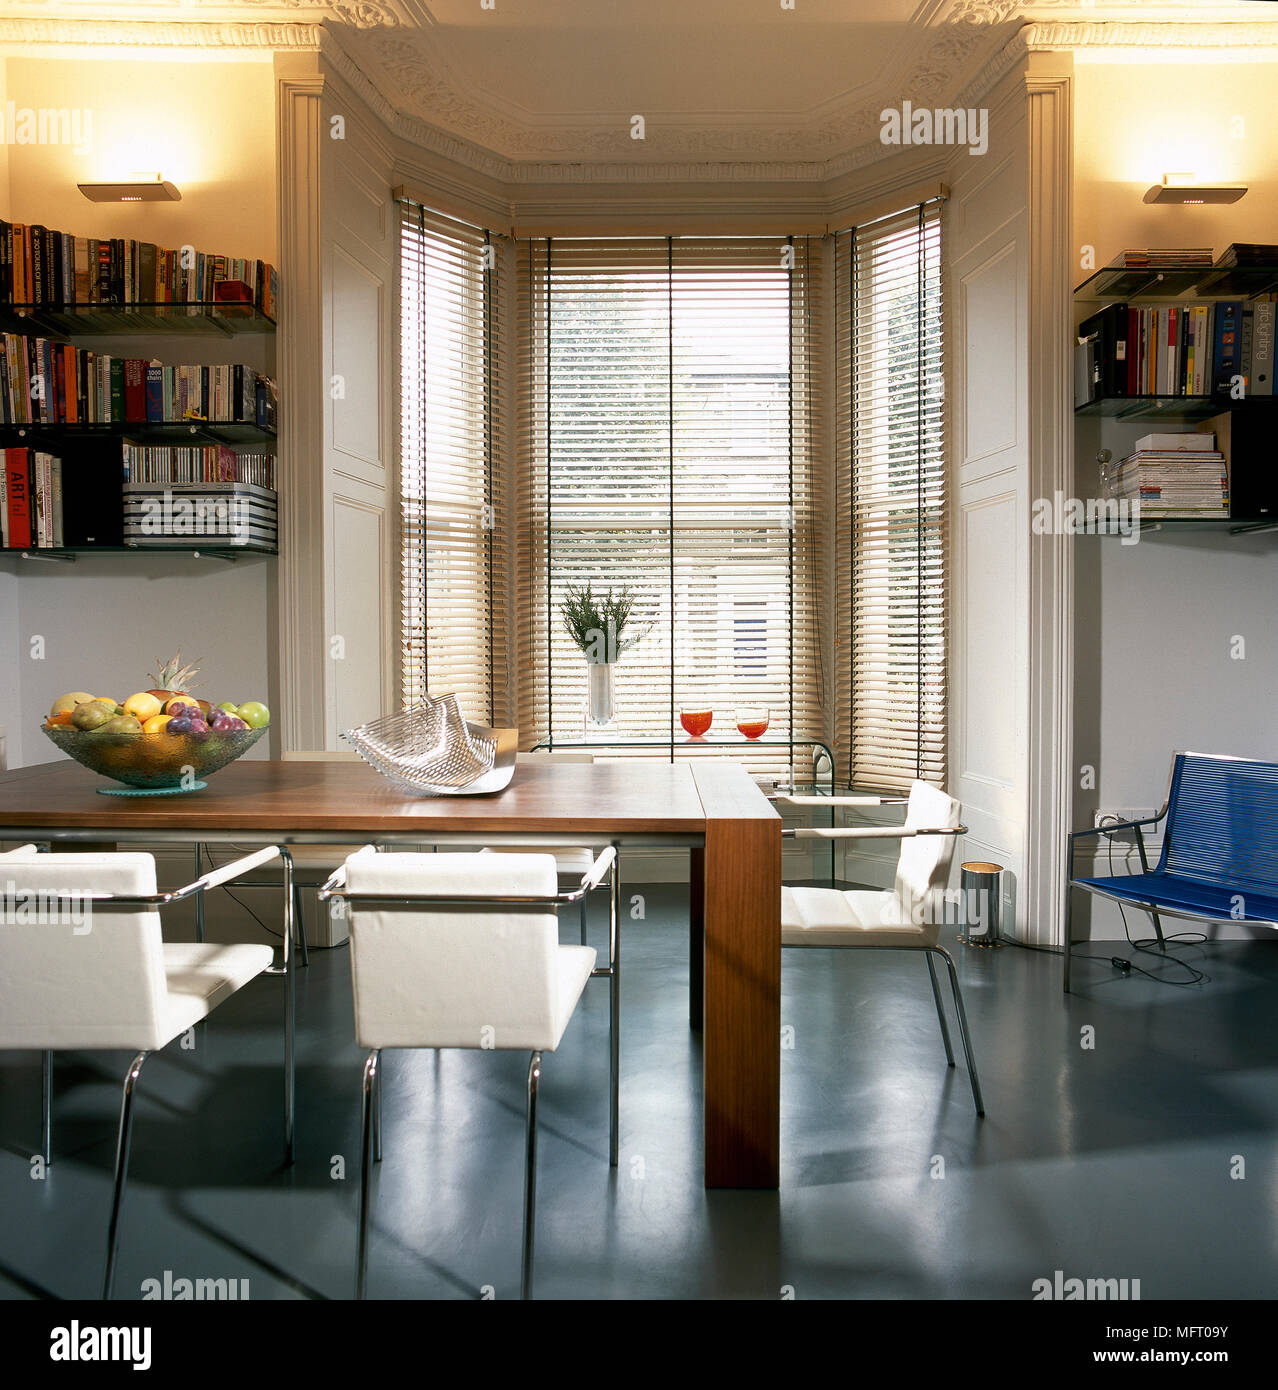 Modern Dining Room With Bay Window With Venetian Blinds Table And Chairs Stock Photo Alamy